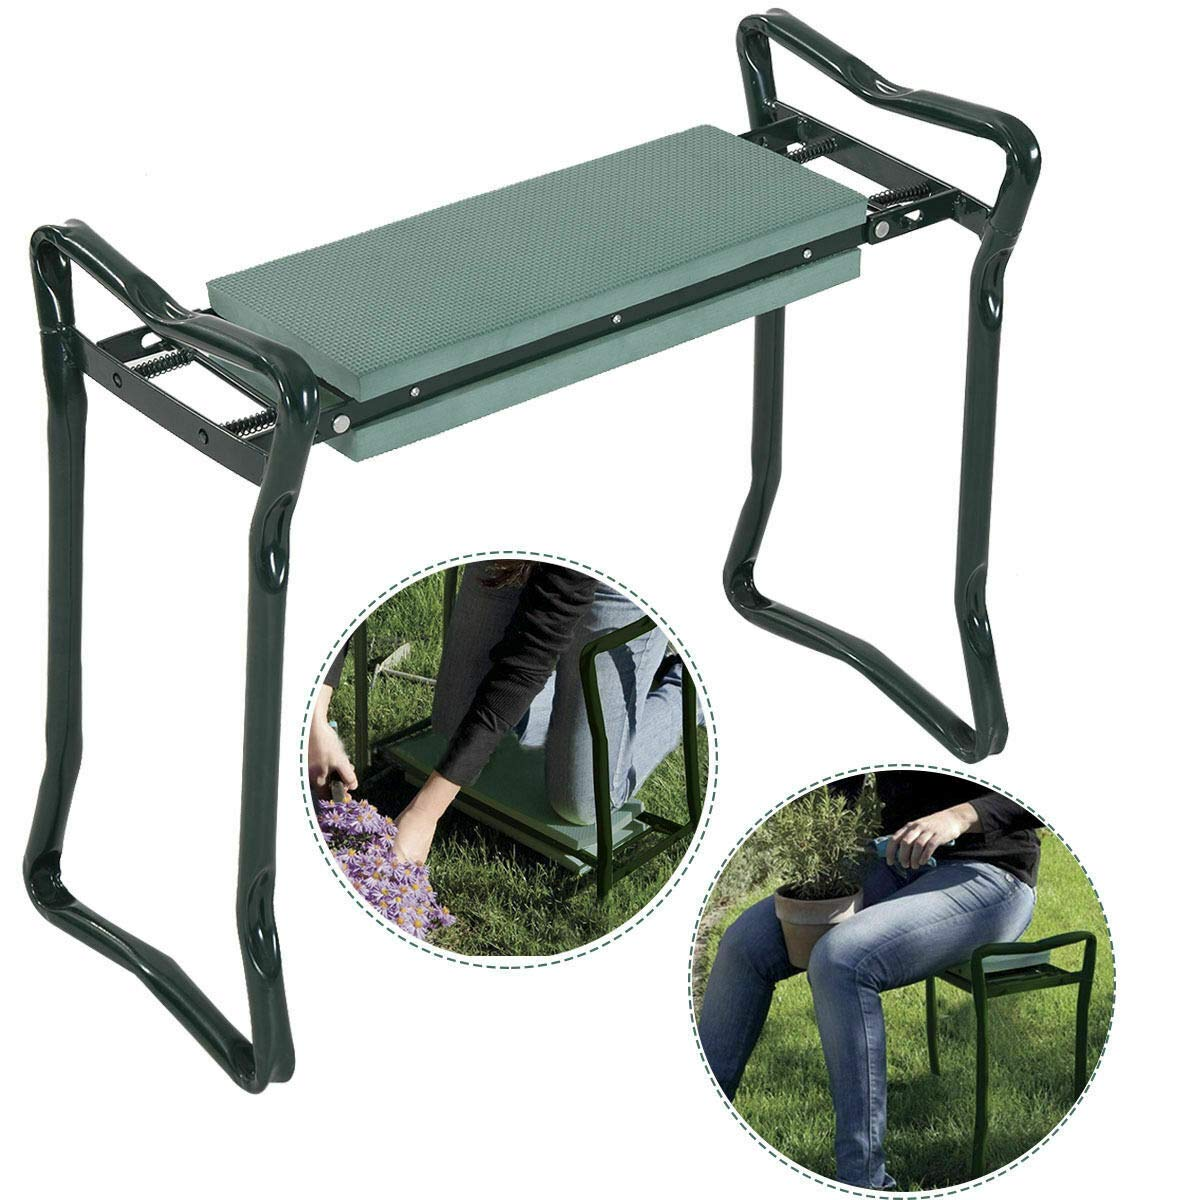 WealthyPlaza Foldable Garden Kneeler & Cushion Seat Knee Pad Seat Bench Stool Folding Sturdy Gardener Kneeling Pad for Convenient Resting – Flip up Side Down 2-in-1 Design by WealthyPlaza (Image #1)